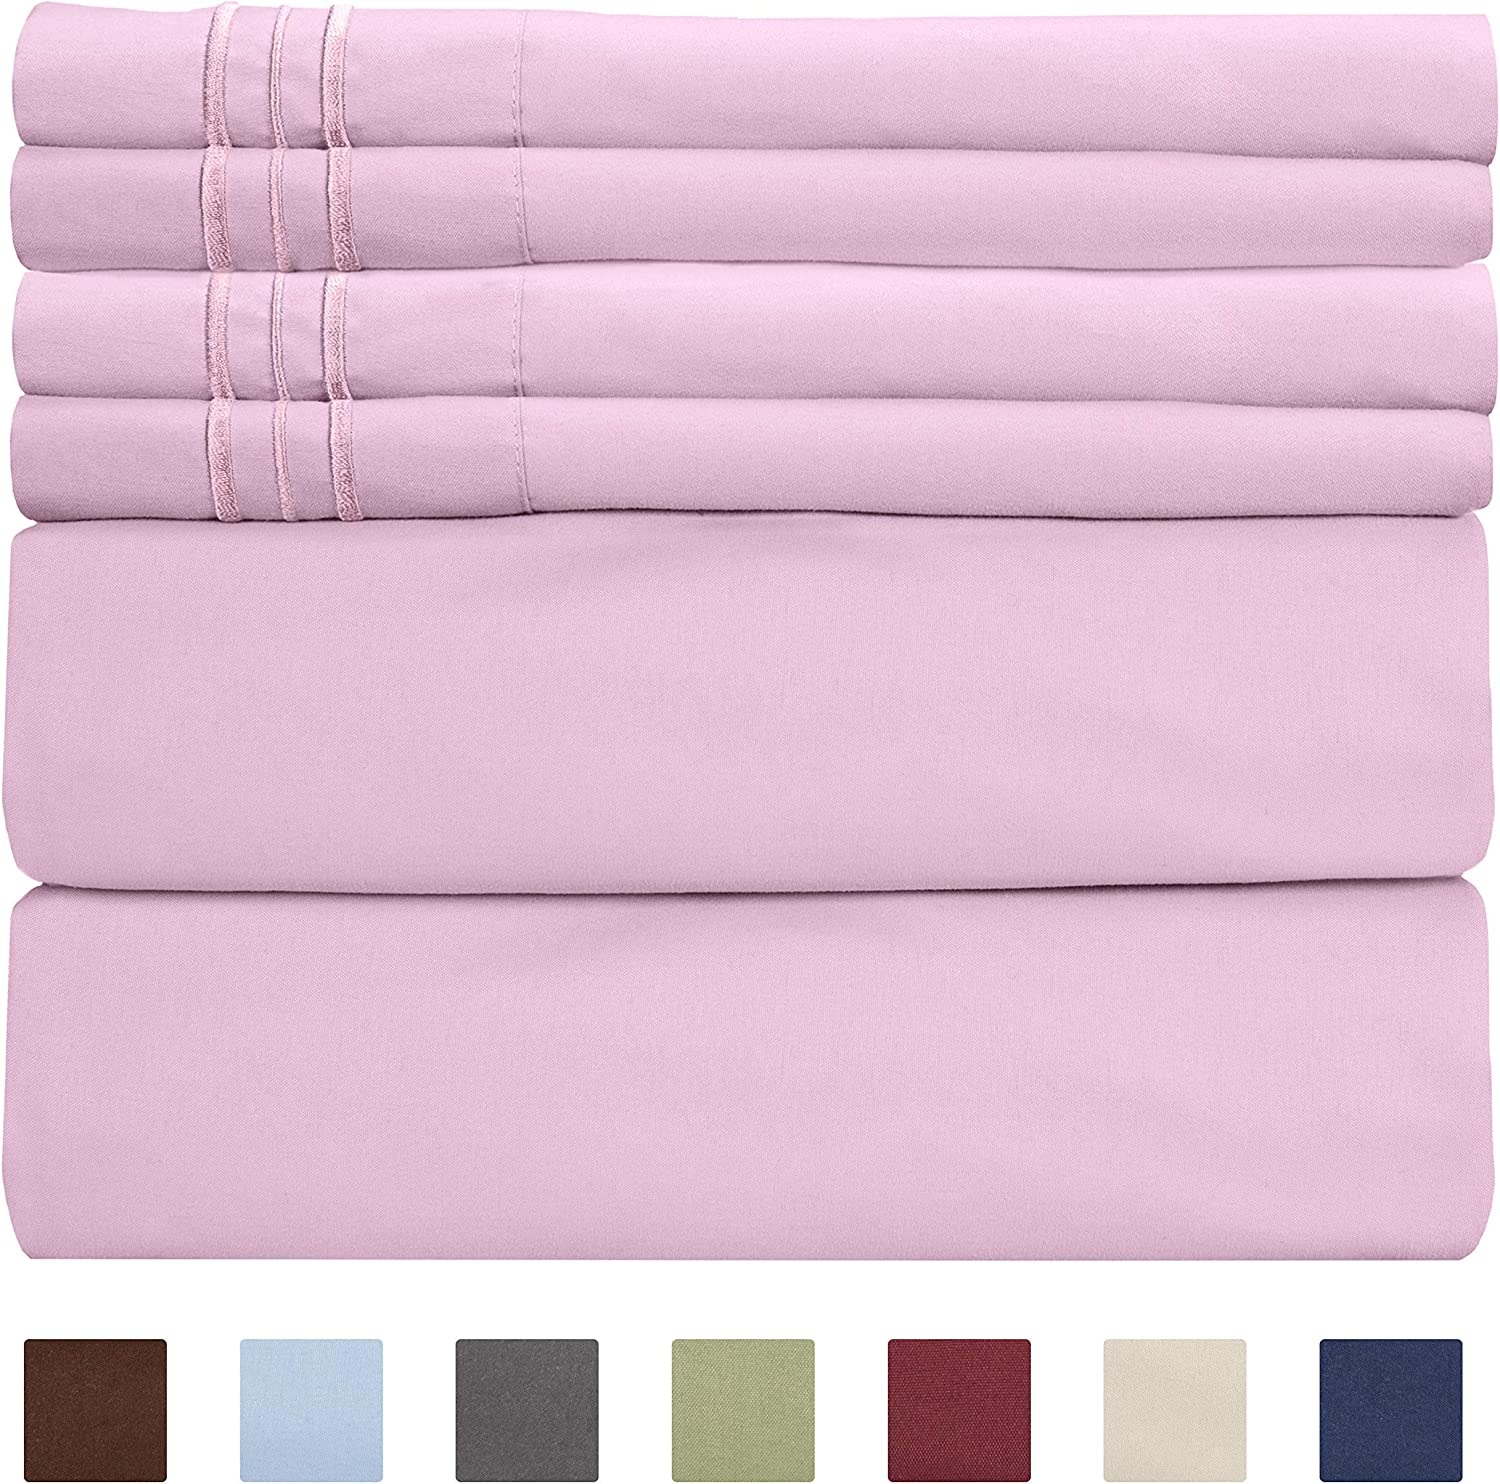 King Size Sheet Set - 6 Piece Set - Hotel Luxury Bed Sheets - Extra Soft - Deep Pockets - Easy Fit - Breathable & Cooling Sheets - Wrinkle Free - Comfy - Light Pink Bed Sheets - Kings Sheets - 6 PC